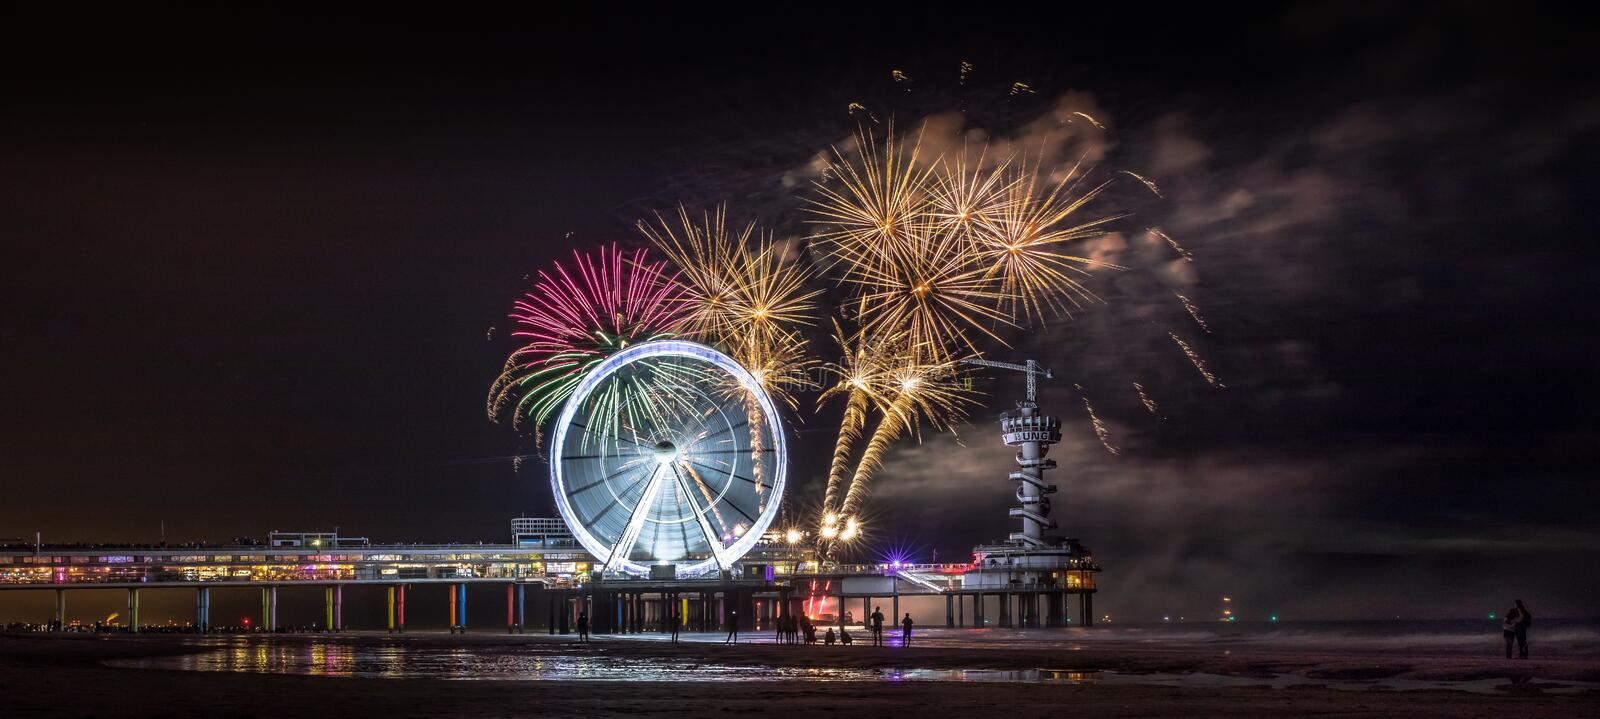 Fireworks Festival Scheveningen. Yearly Fireworks Festival in Scheveningen The largest freely accessible fireworks event in Europe is now organized for the 39th royalty free stock image